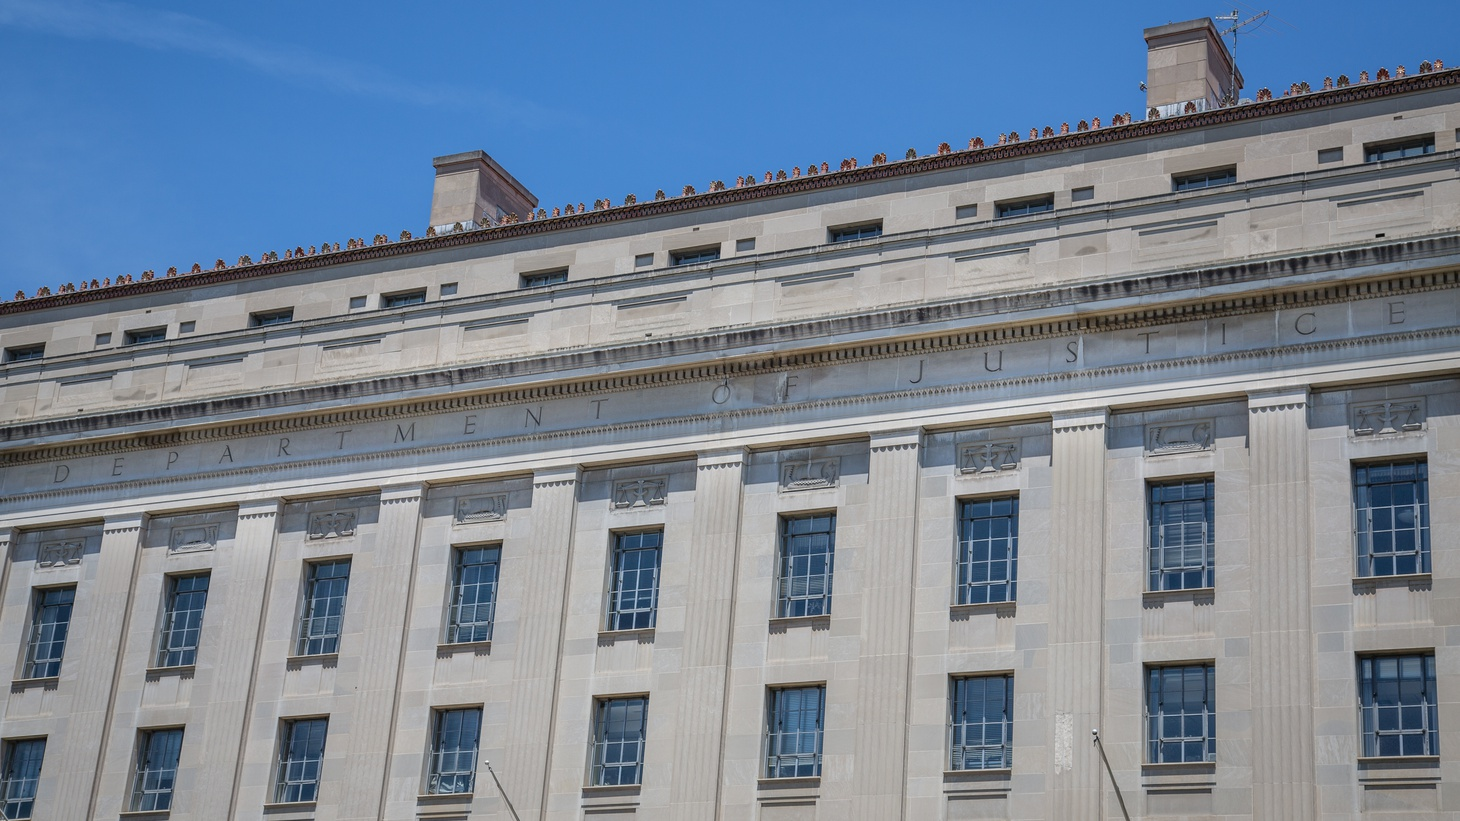 The U.S. Department of Justice building in Washington, DC.